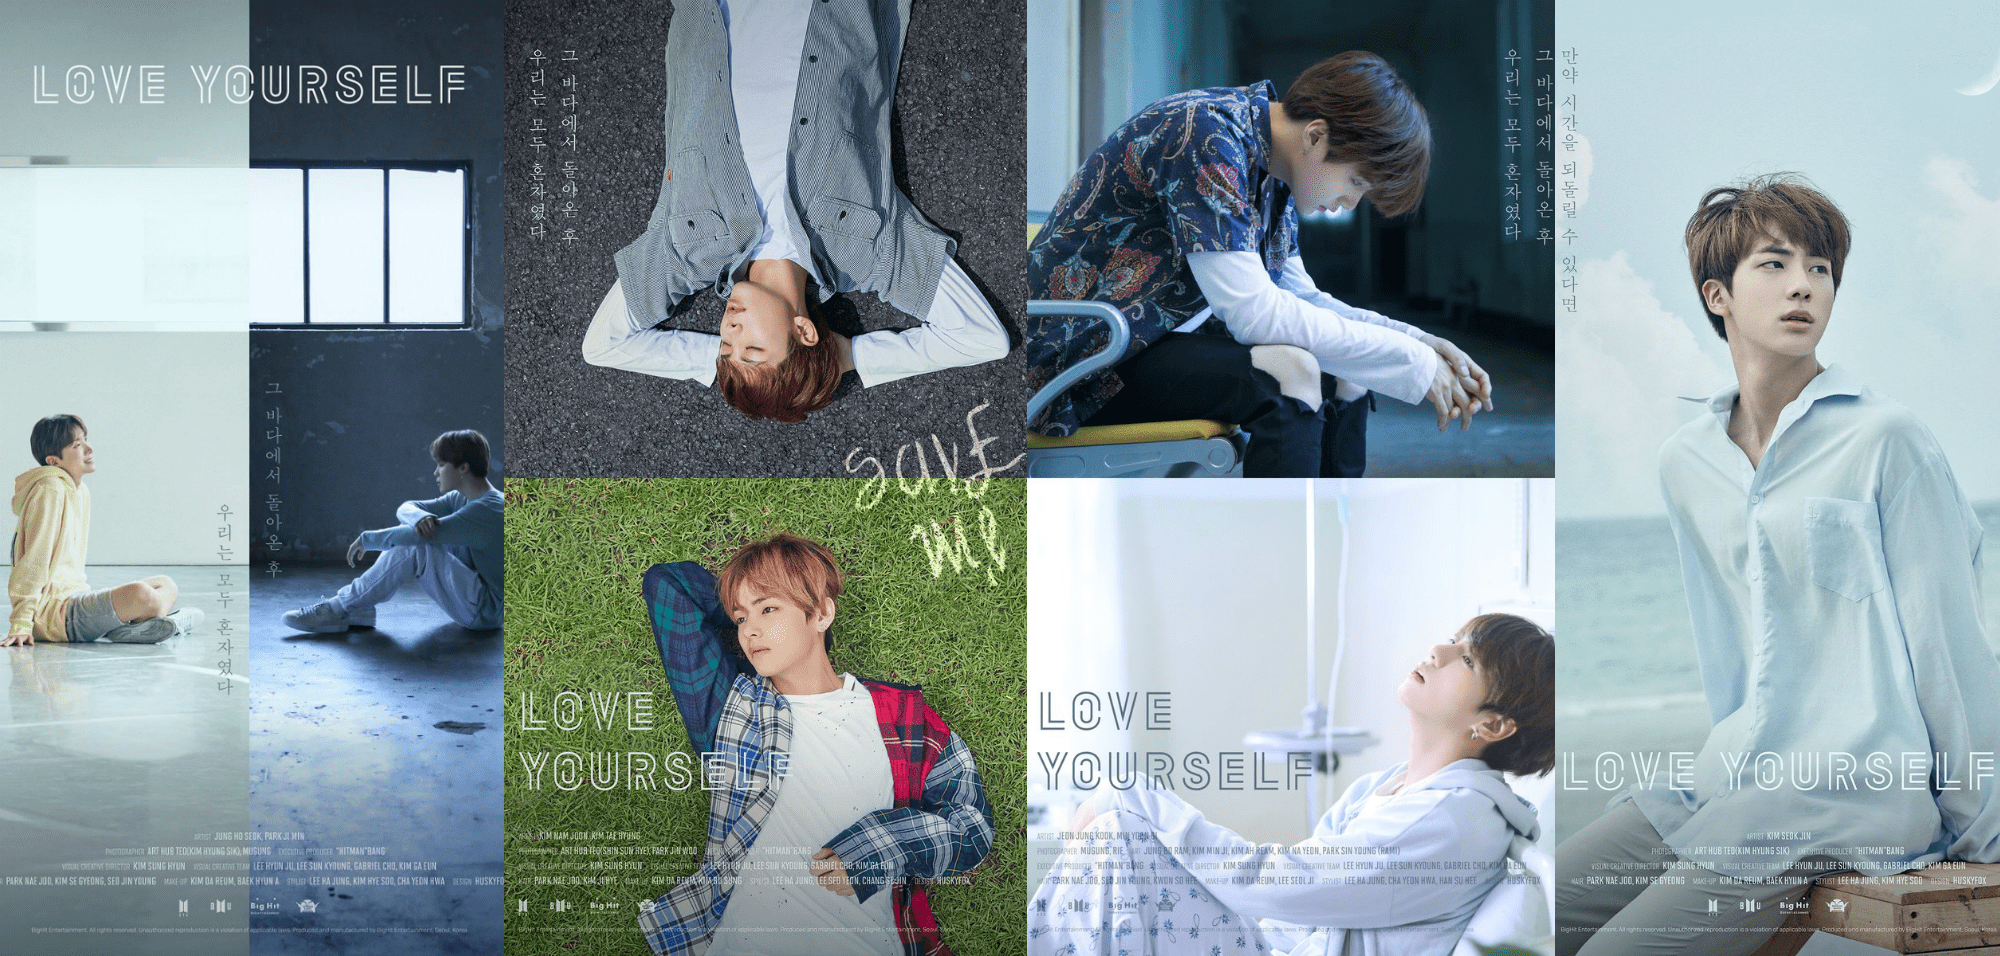 """BTS Implies Tragic Sea Story In Second Set Of """"Love Yourself"""" Posters"""